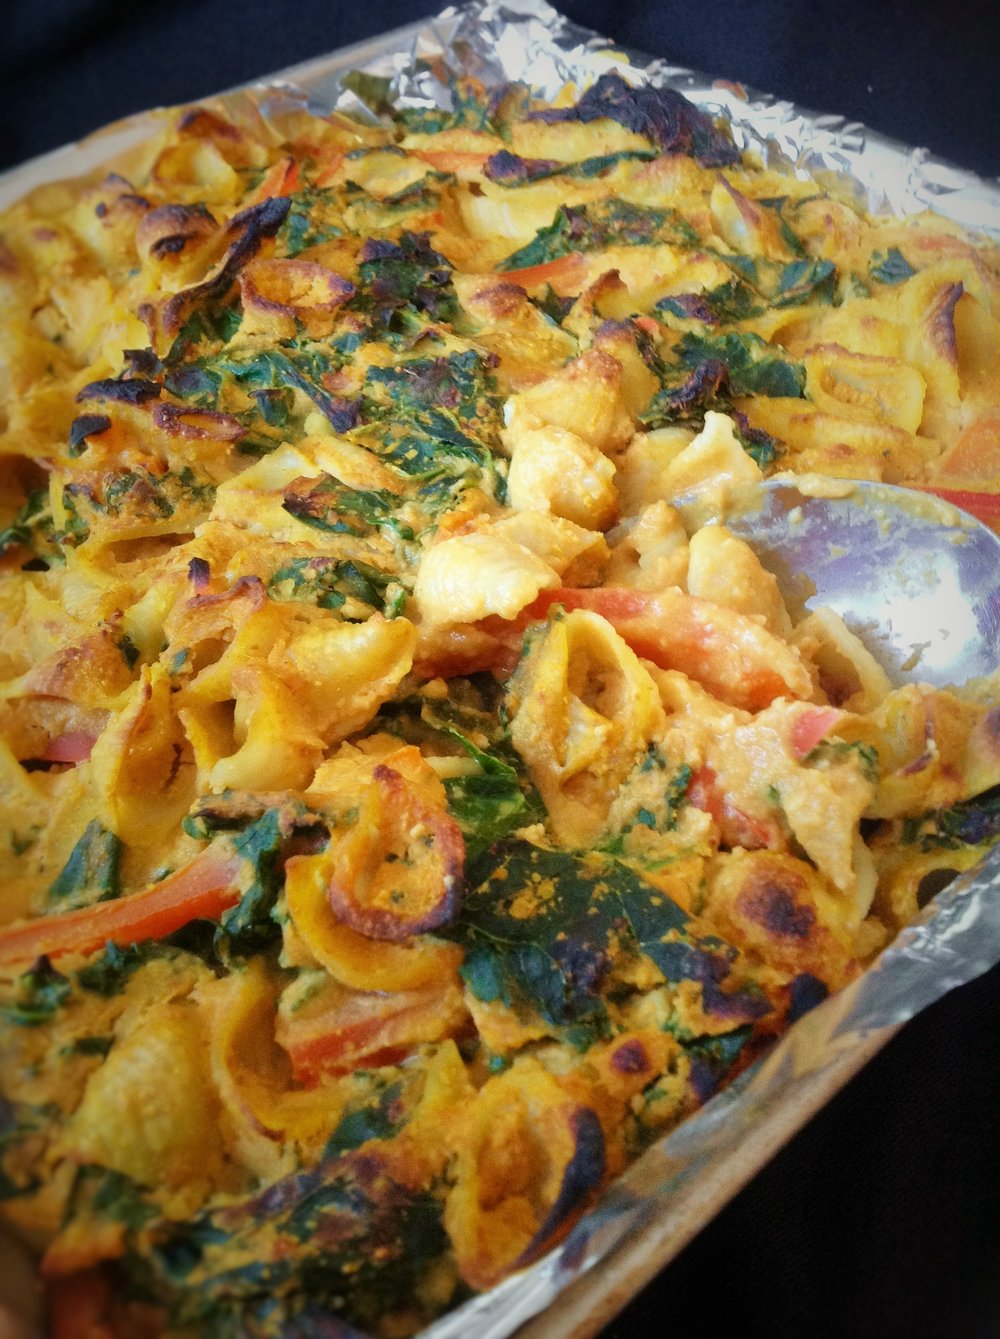 Cheezy Kale Pasta Bake - Healthy, plant-based, dairy-free, oil-free, gluten-free vegan recipe